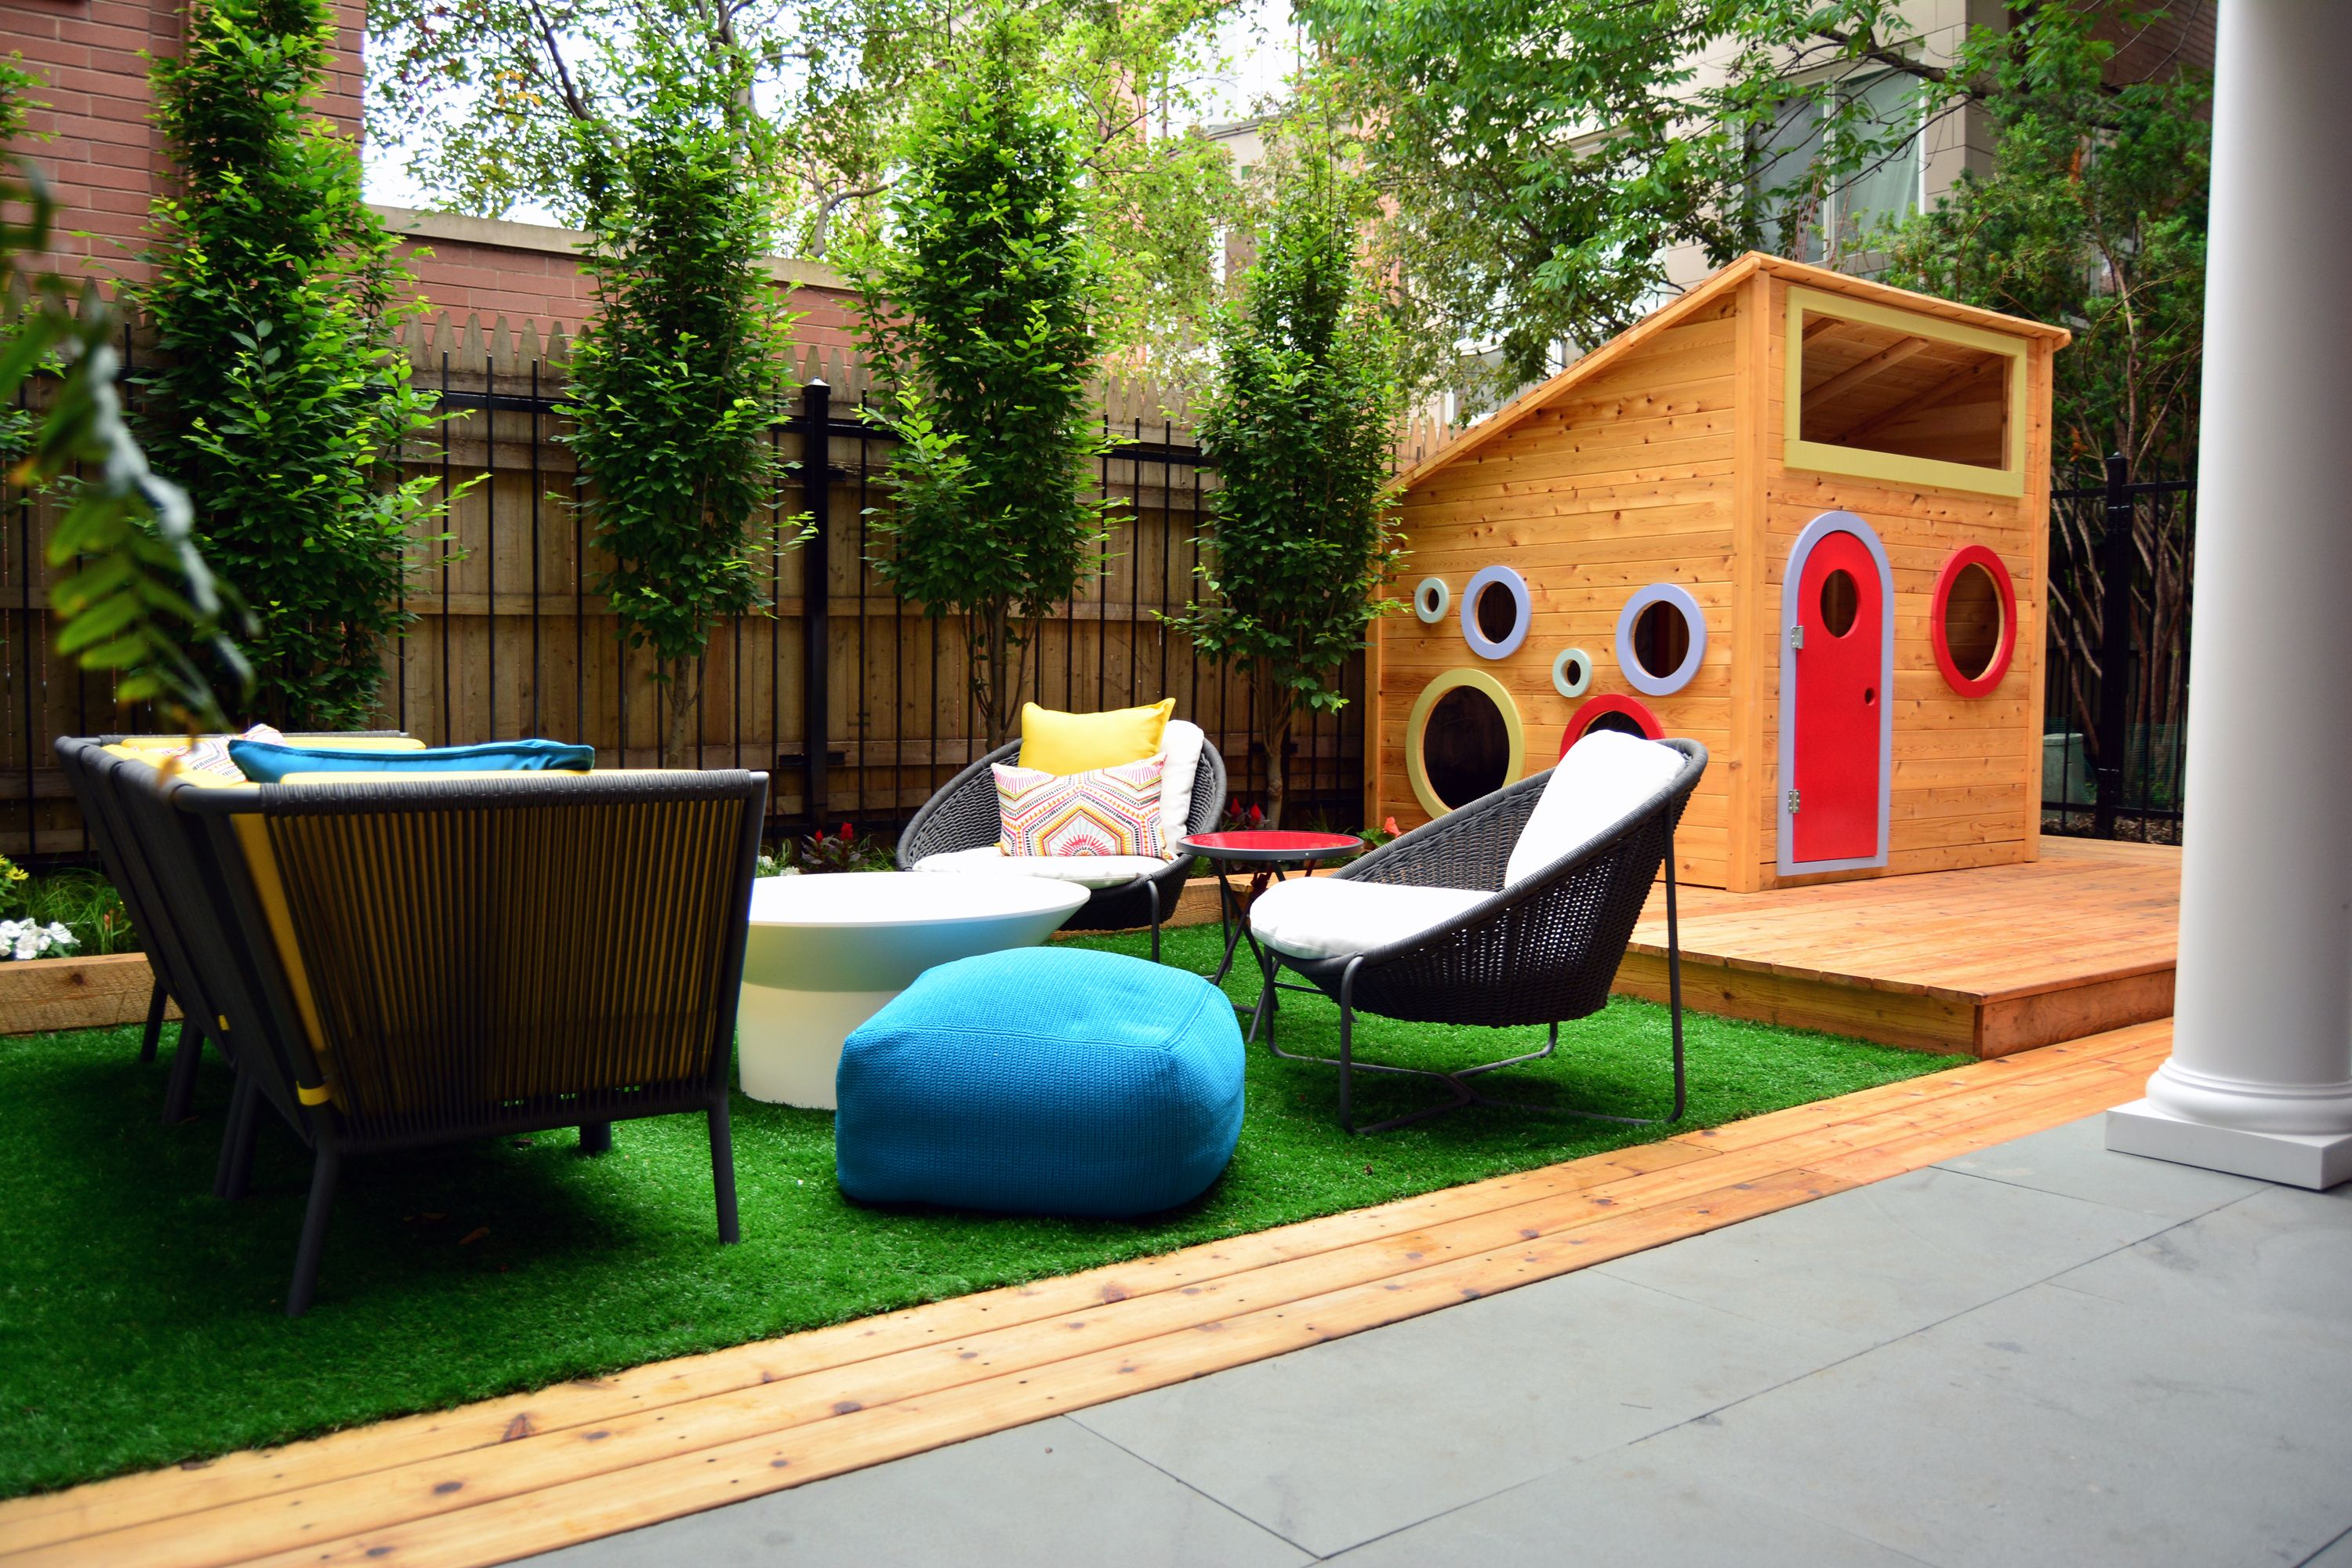 back yard landscape design urban artificial turf outdoor furniture kids playhouse